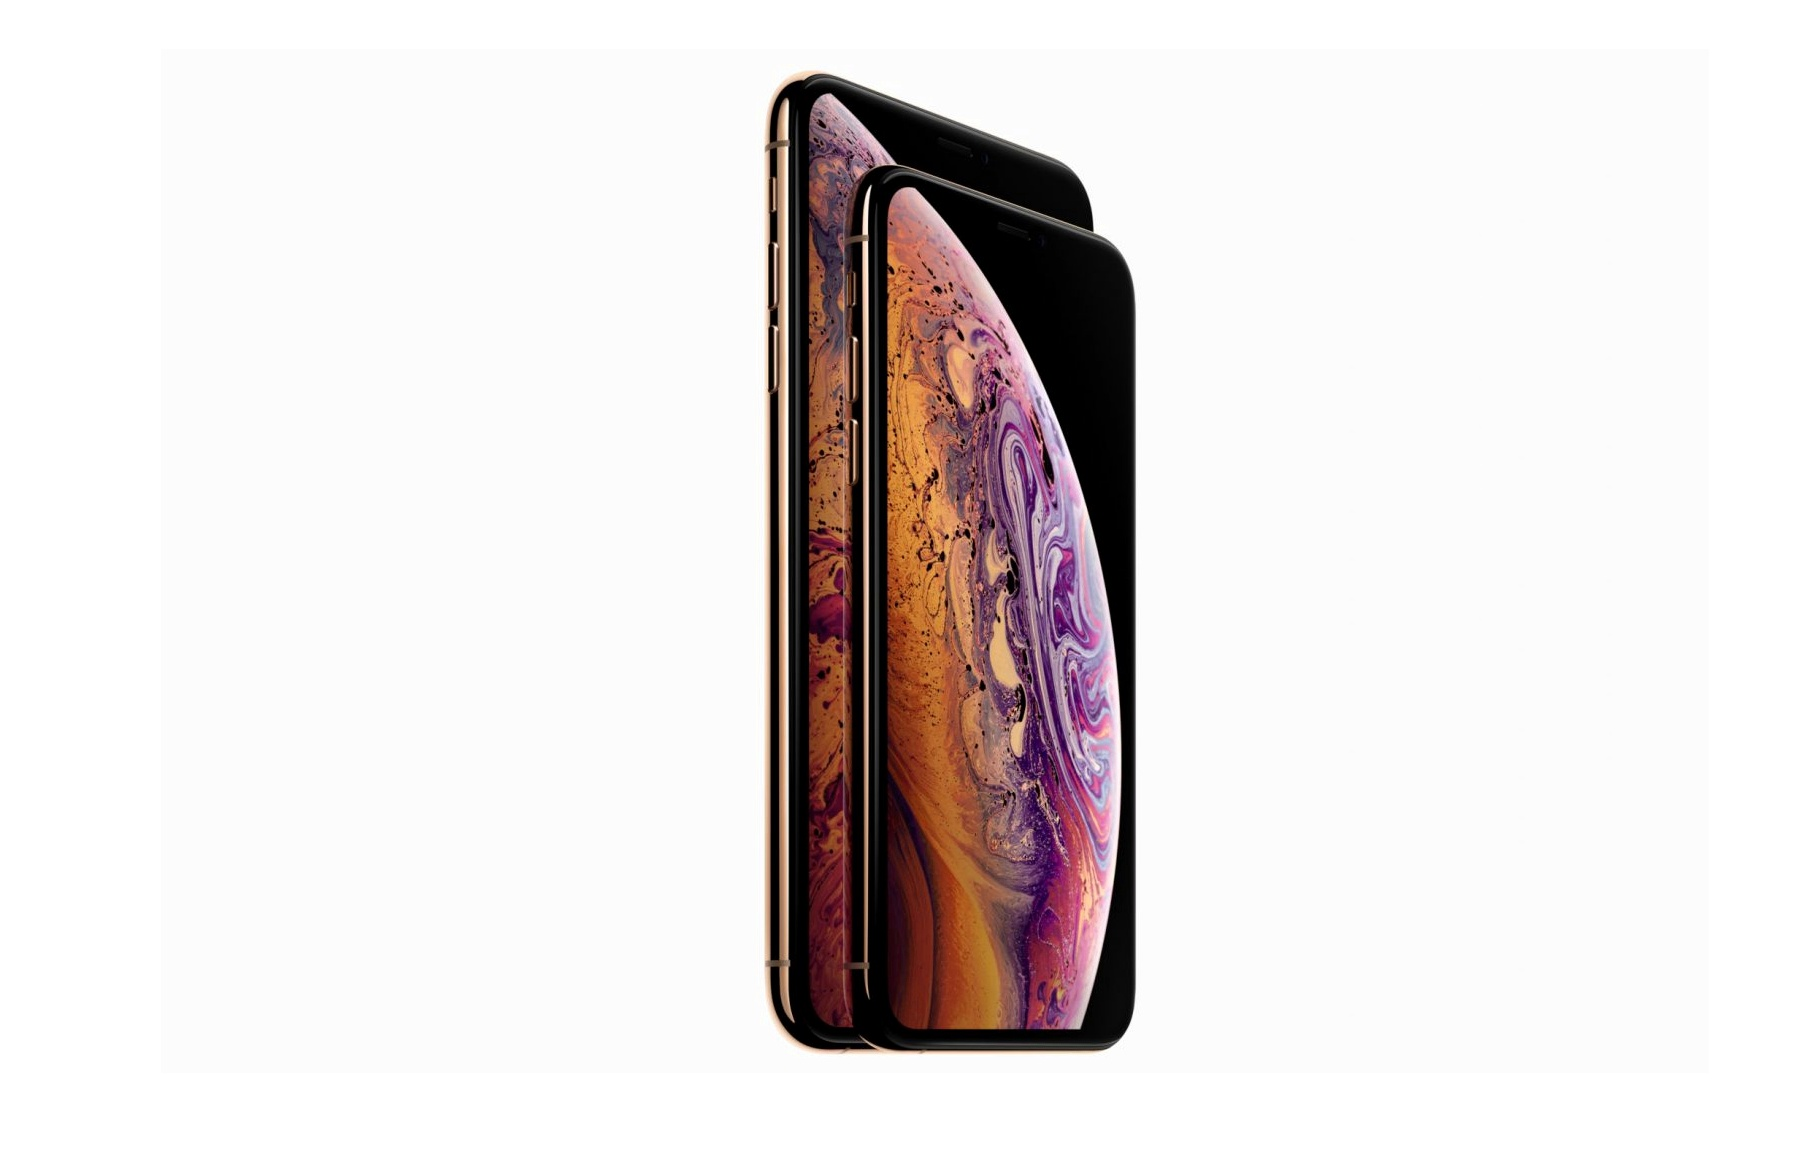 Apple iPhone XR, XS and XS Max Indian price revealed:  Rs 76,900 is the starting price